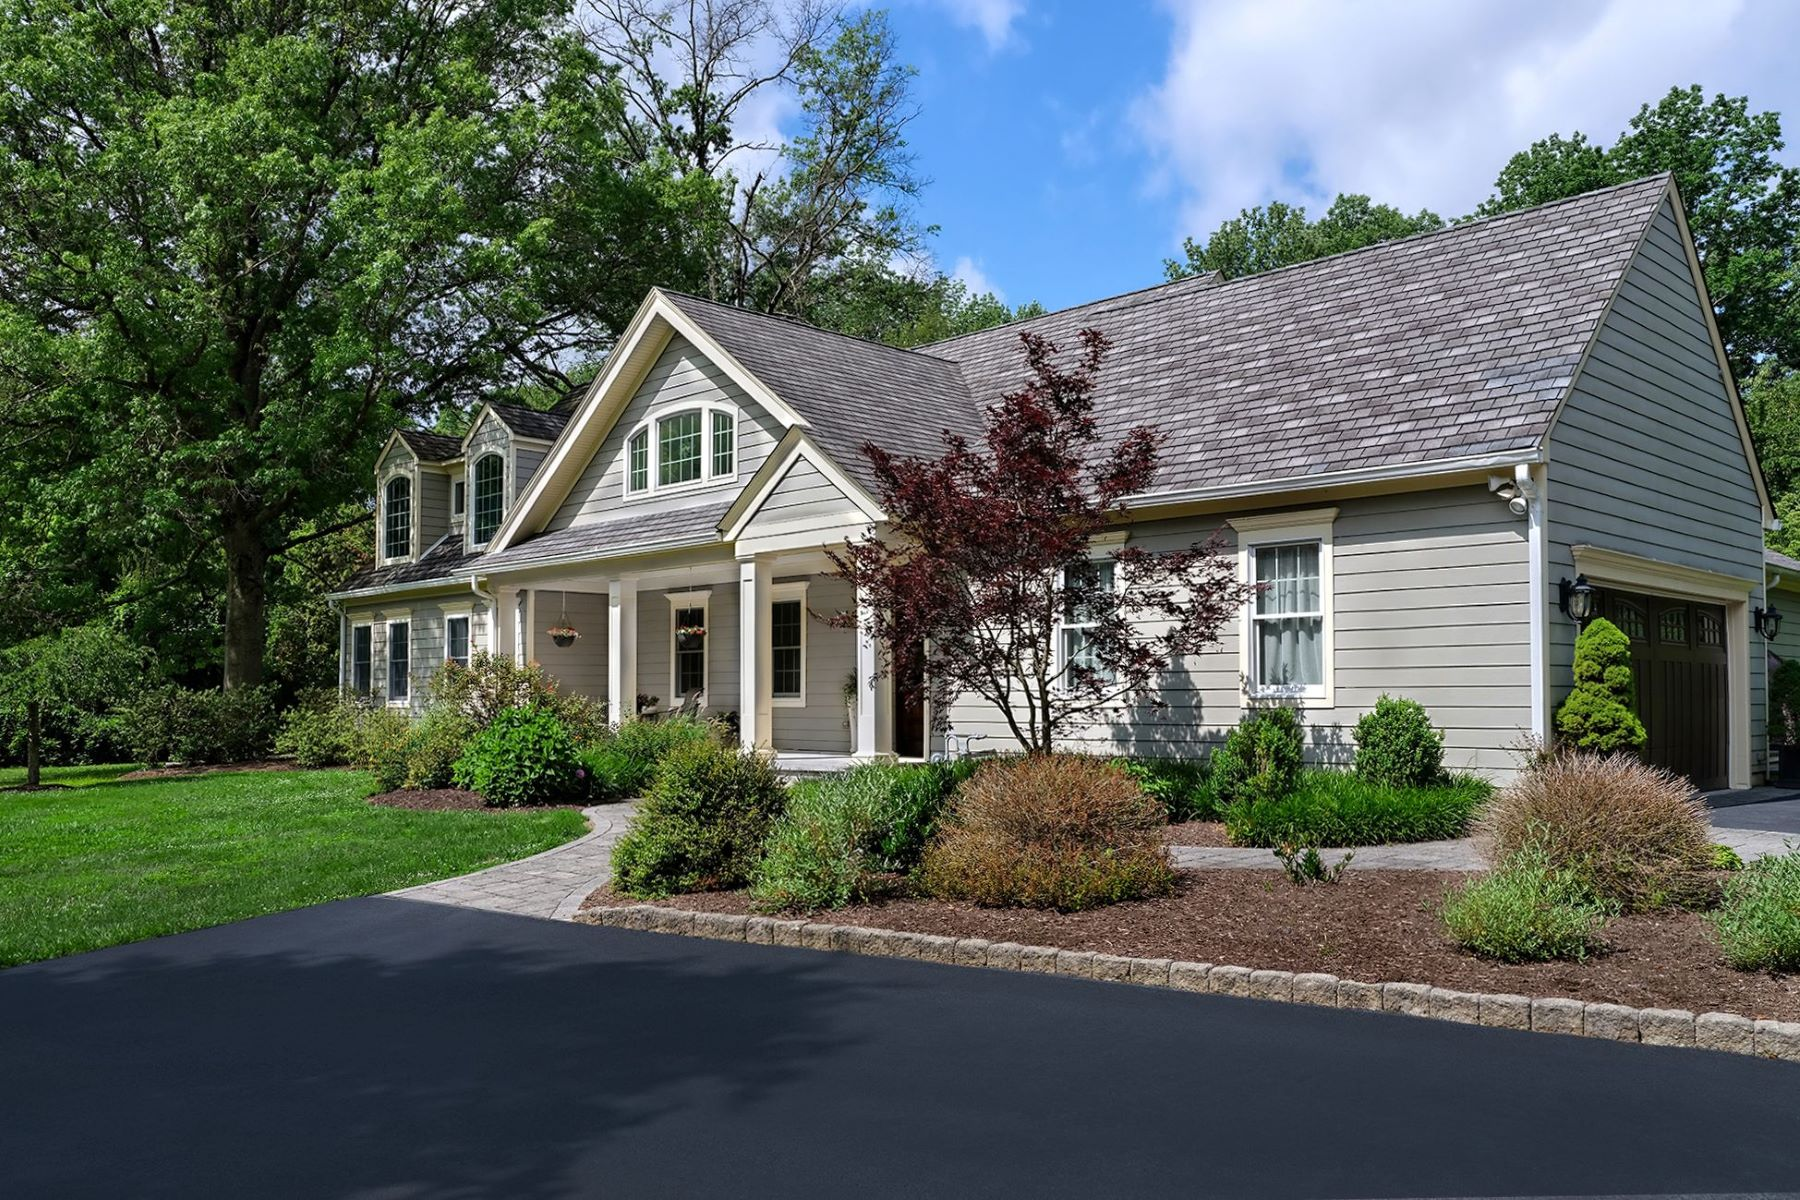 Single Family Homes for Sale at A Pool, Parklike Grounds, and Princeton Address 4424 Province Line Road, Princeton, New Jersey 08540 United States